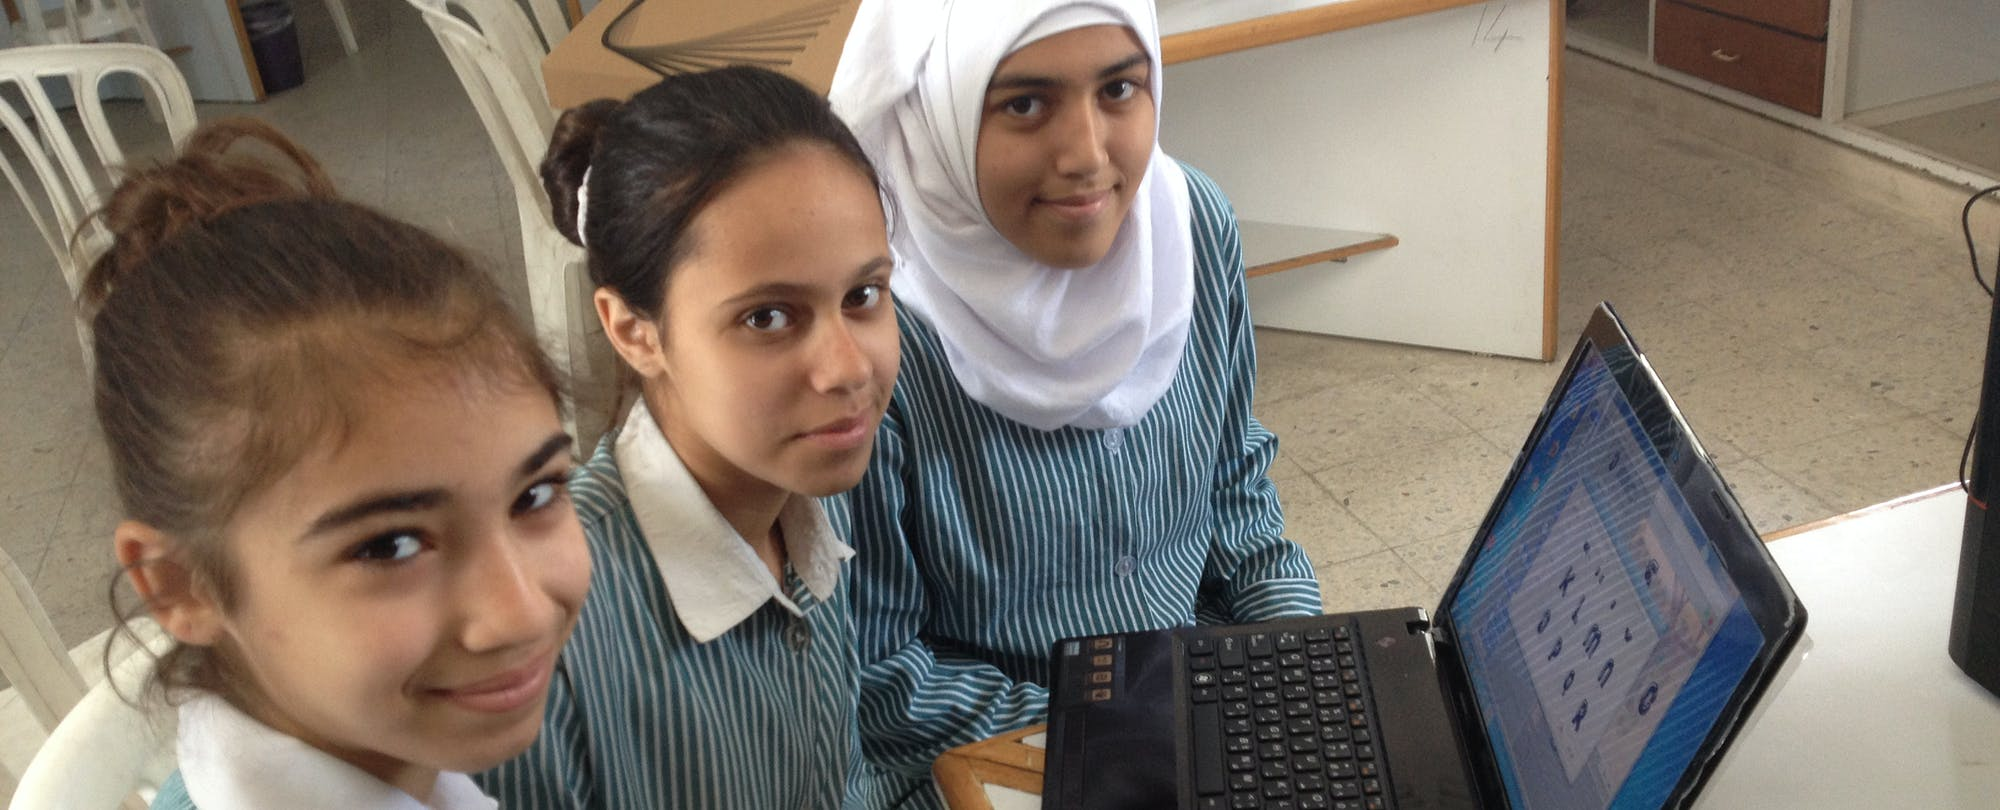 Ten Years Ago Fewer Than 3,000 Girls Took the AP CS Exam. Now There Are Nearly 30,000